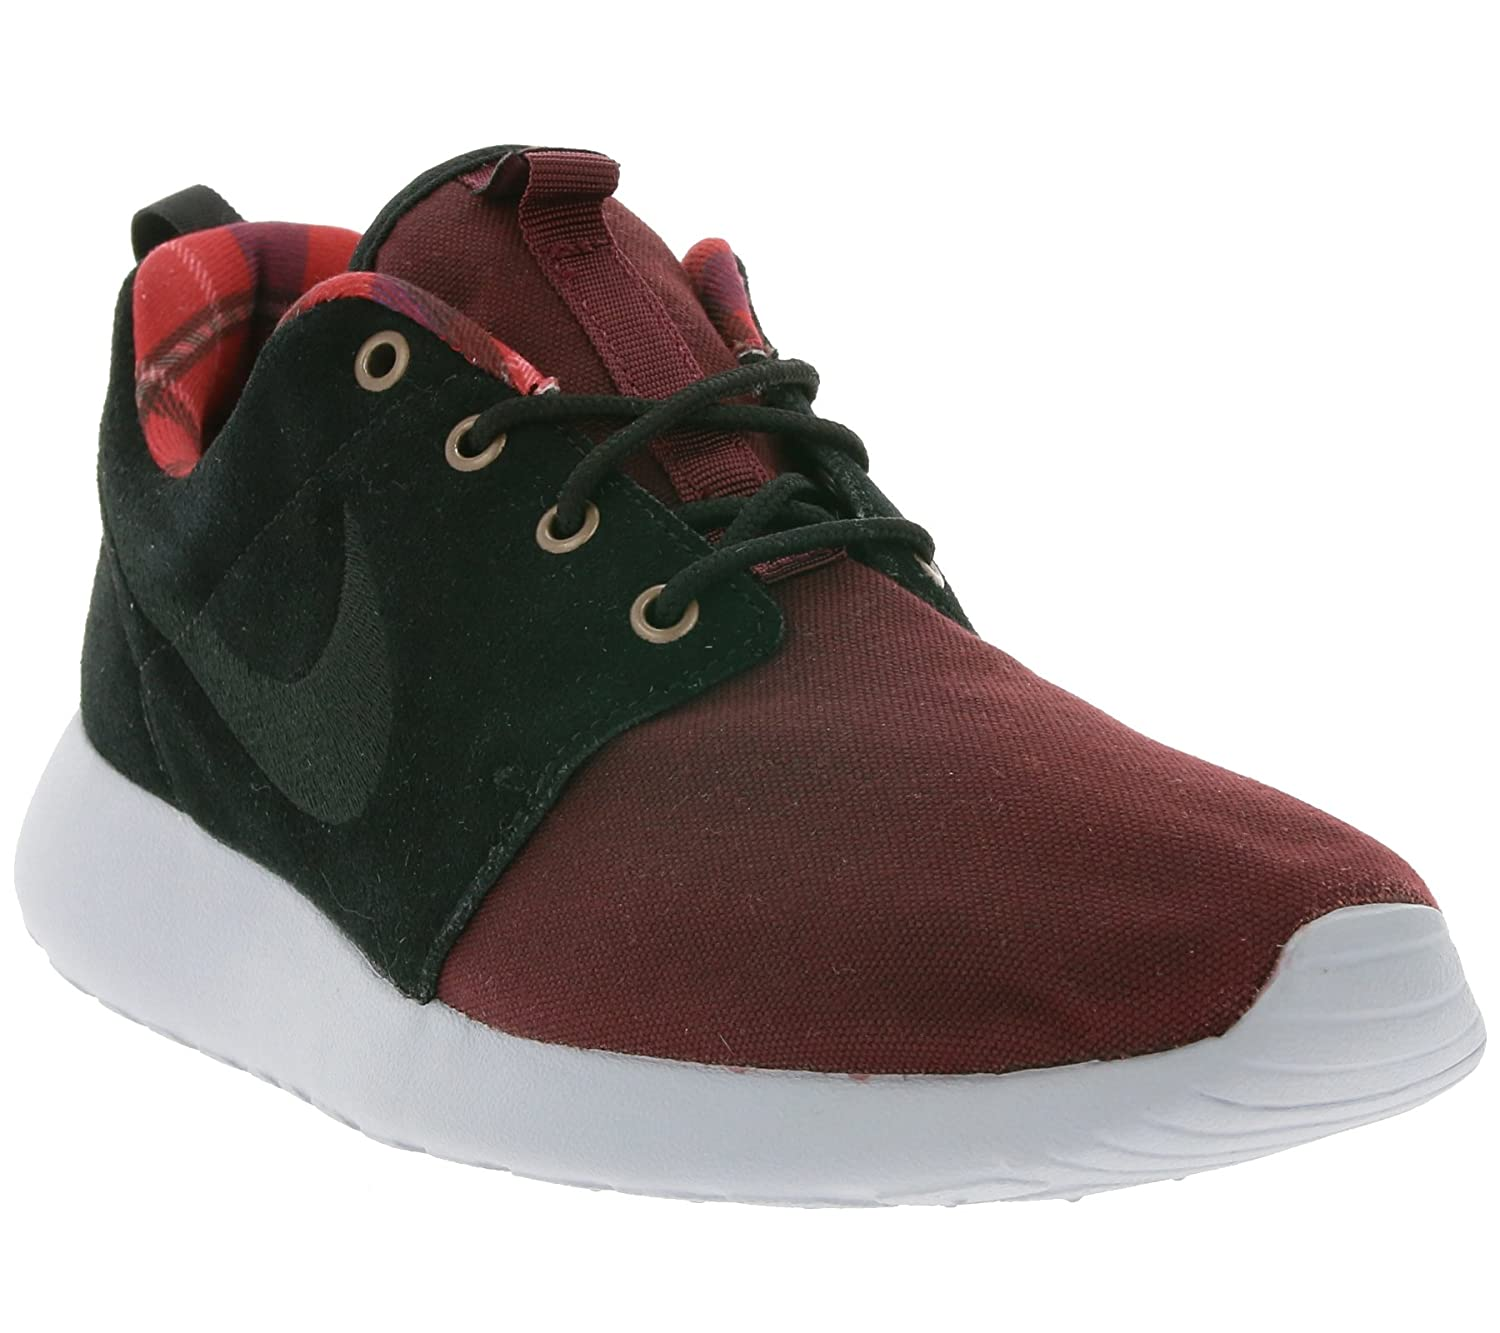 new style 88d75 9023f Amazon.com  Nike Mens Roshe One Premium Running Shoes  Fashion Sneakers